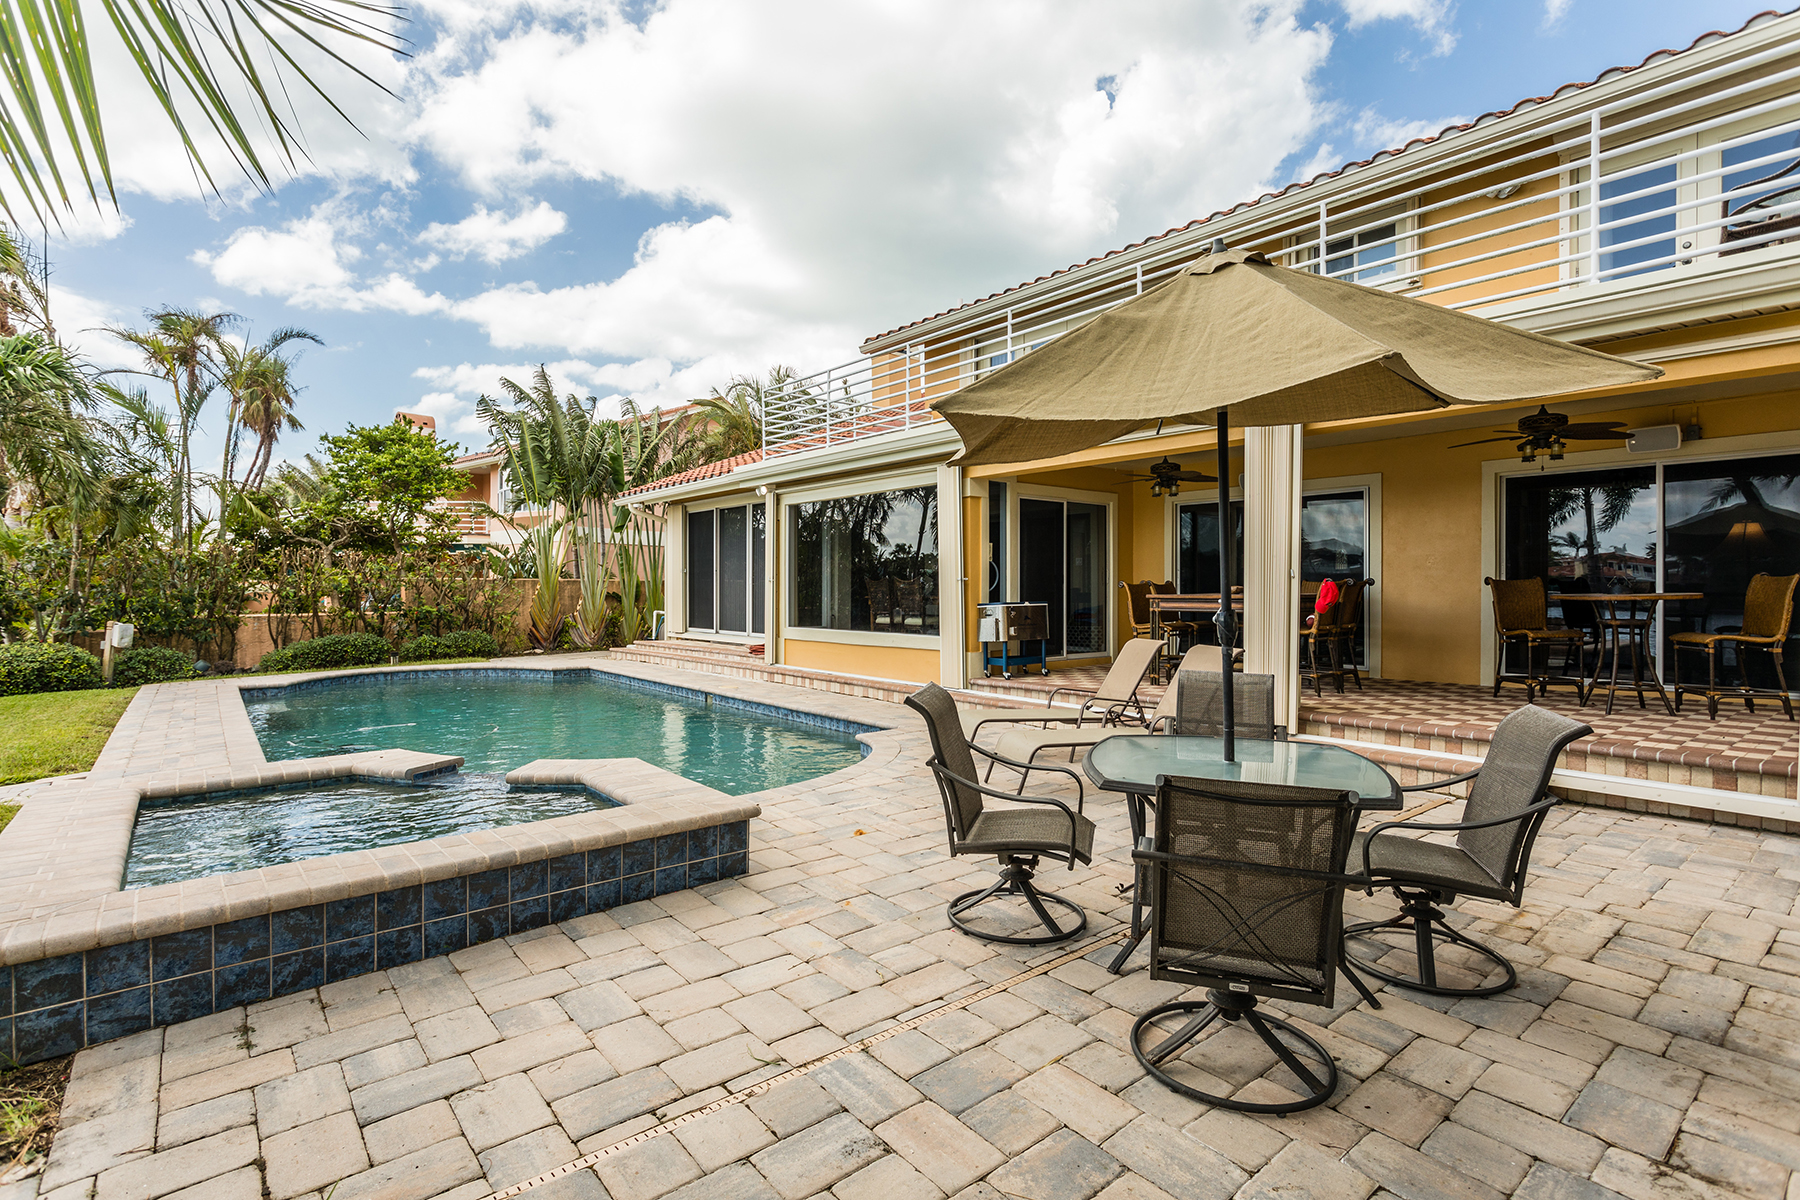 Additional photo for property listing at BELLEAIR BEACH 3117  Tiffany Dr,  Belleair Beach, Florida 33786 United States